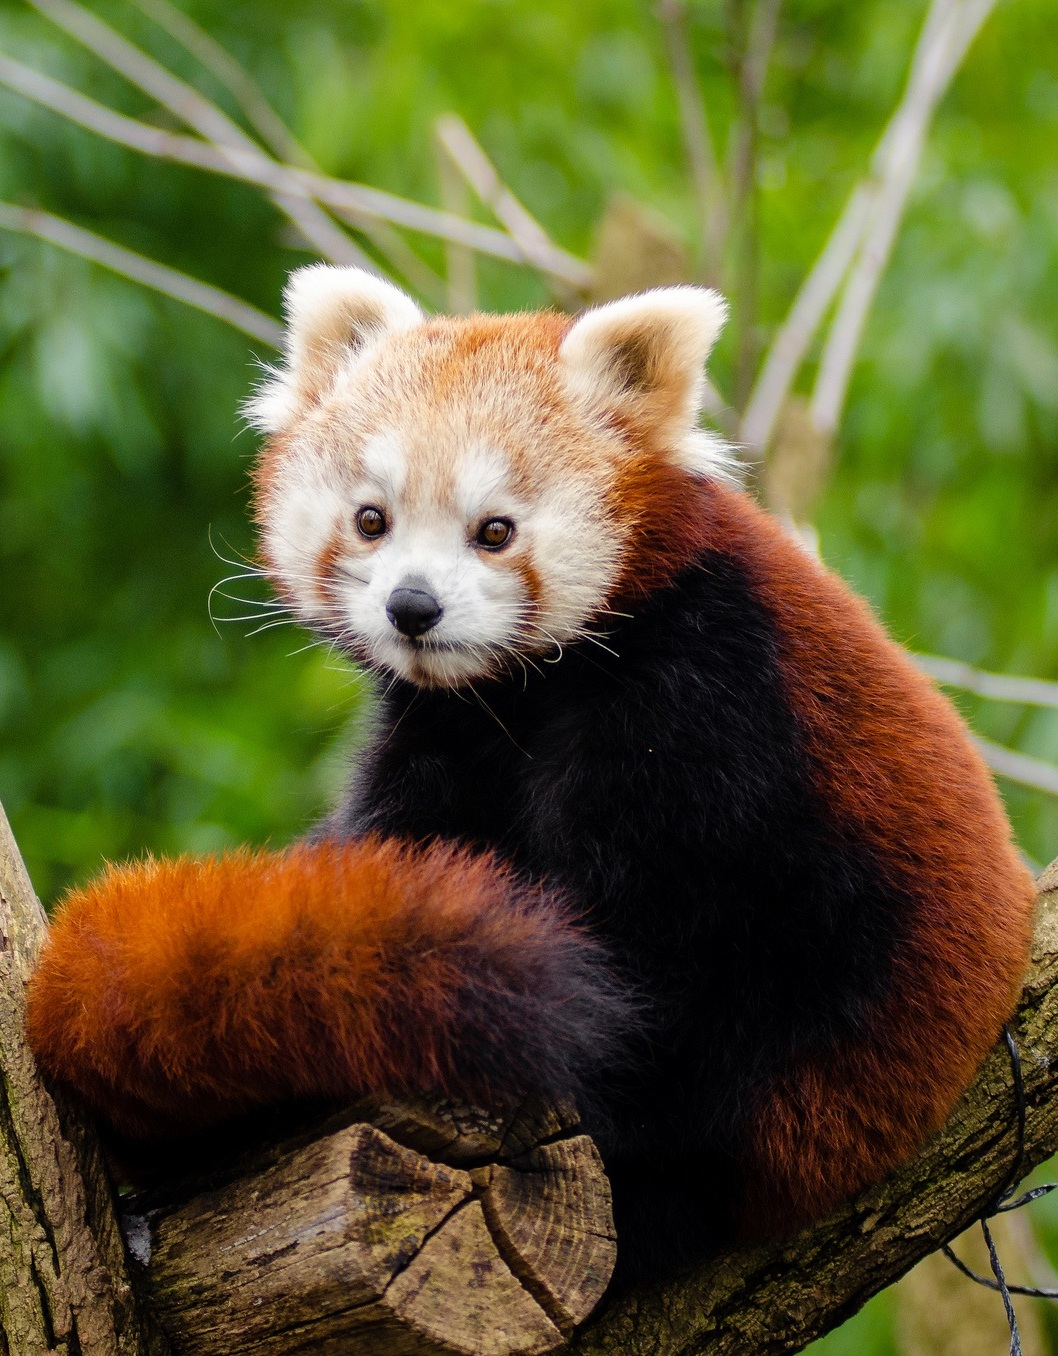 An image of a red panda.